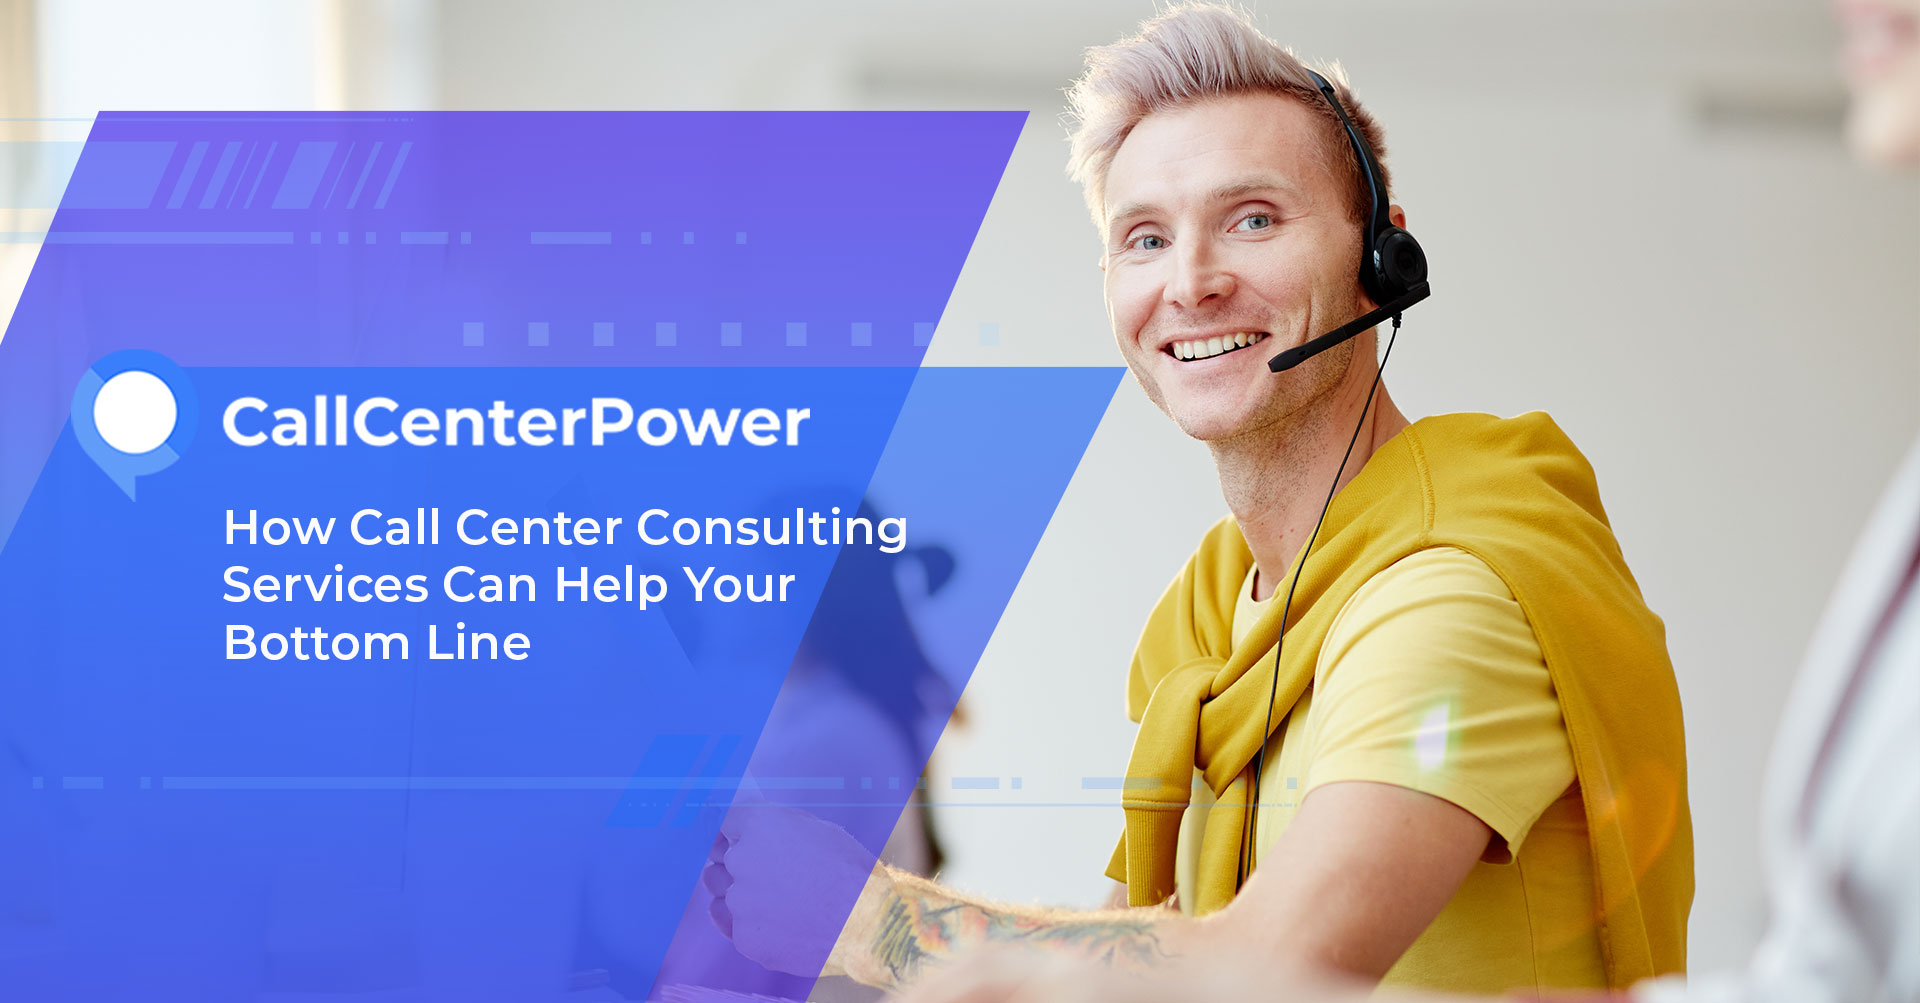 Call Center Consulting Services Can Help Your Bottom Line